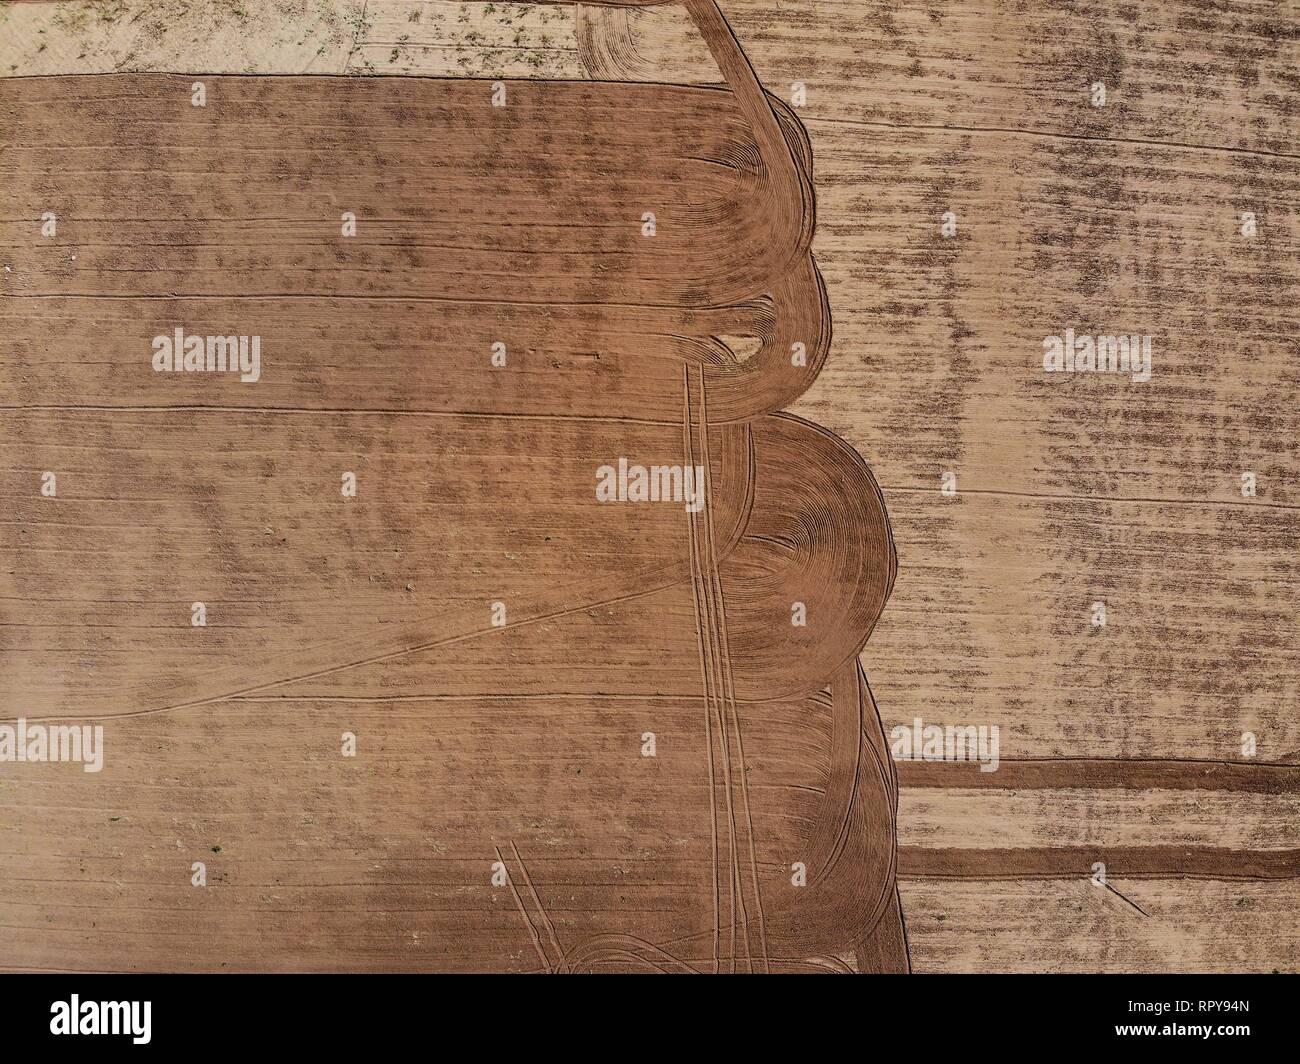 Aerial view of crop field, field of land in the vicinity of Santa Ana, Sonora, Mexico. shapes, figures, lines, Agriculture, Agronomy, Landscape, dayli - Stock Image